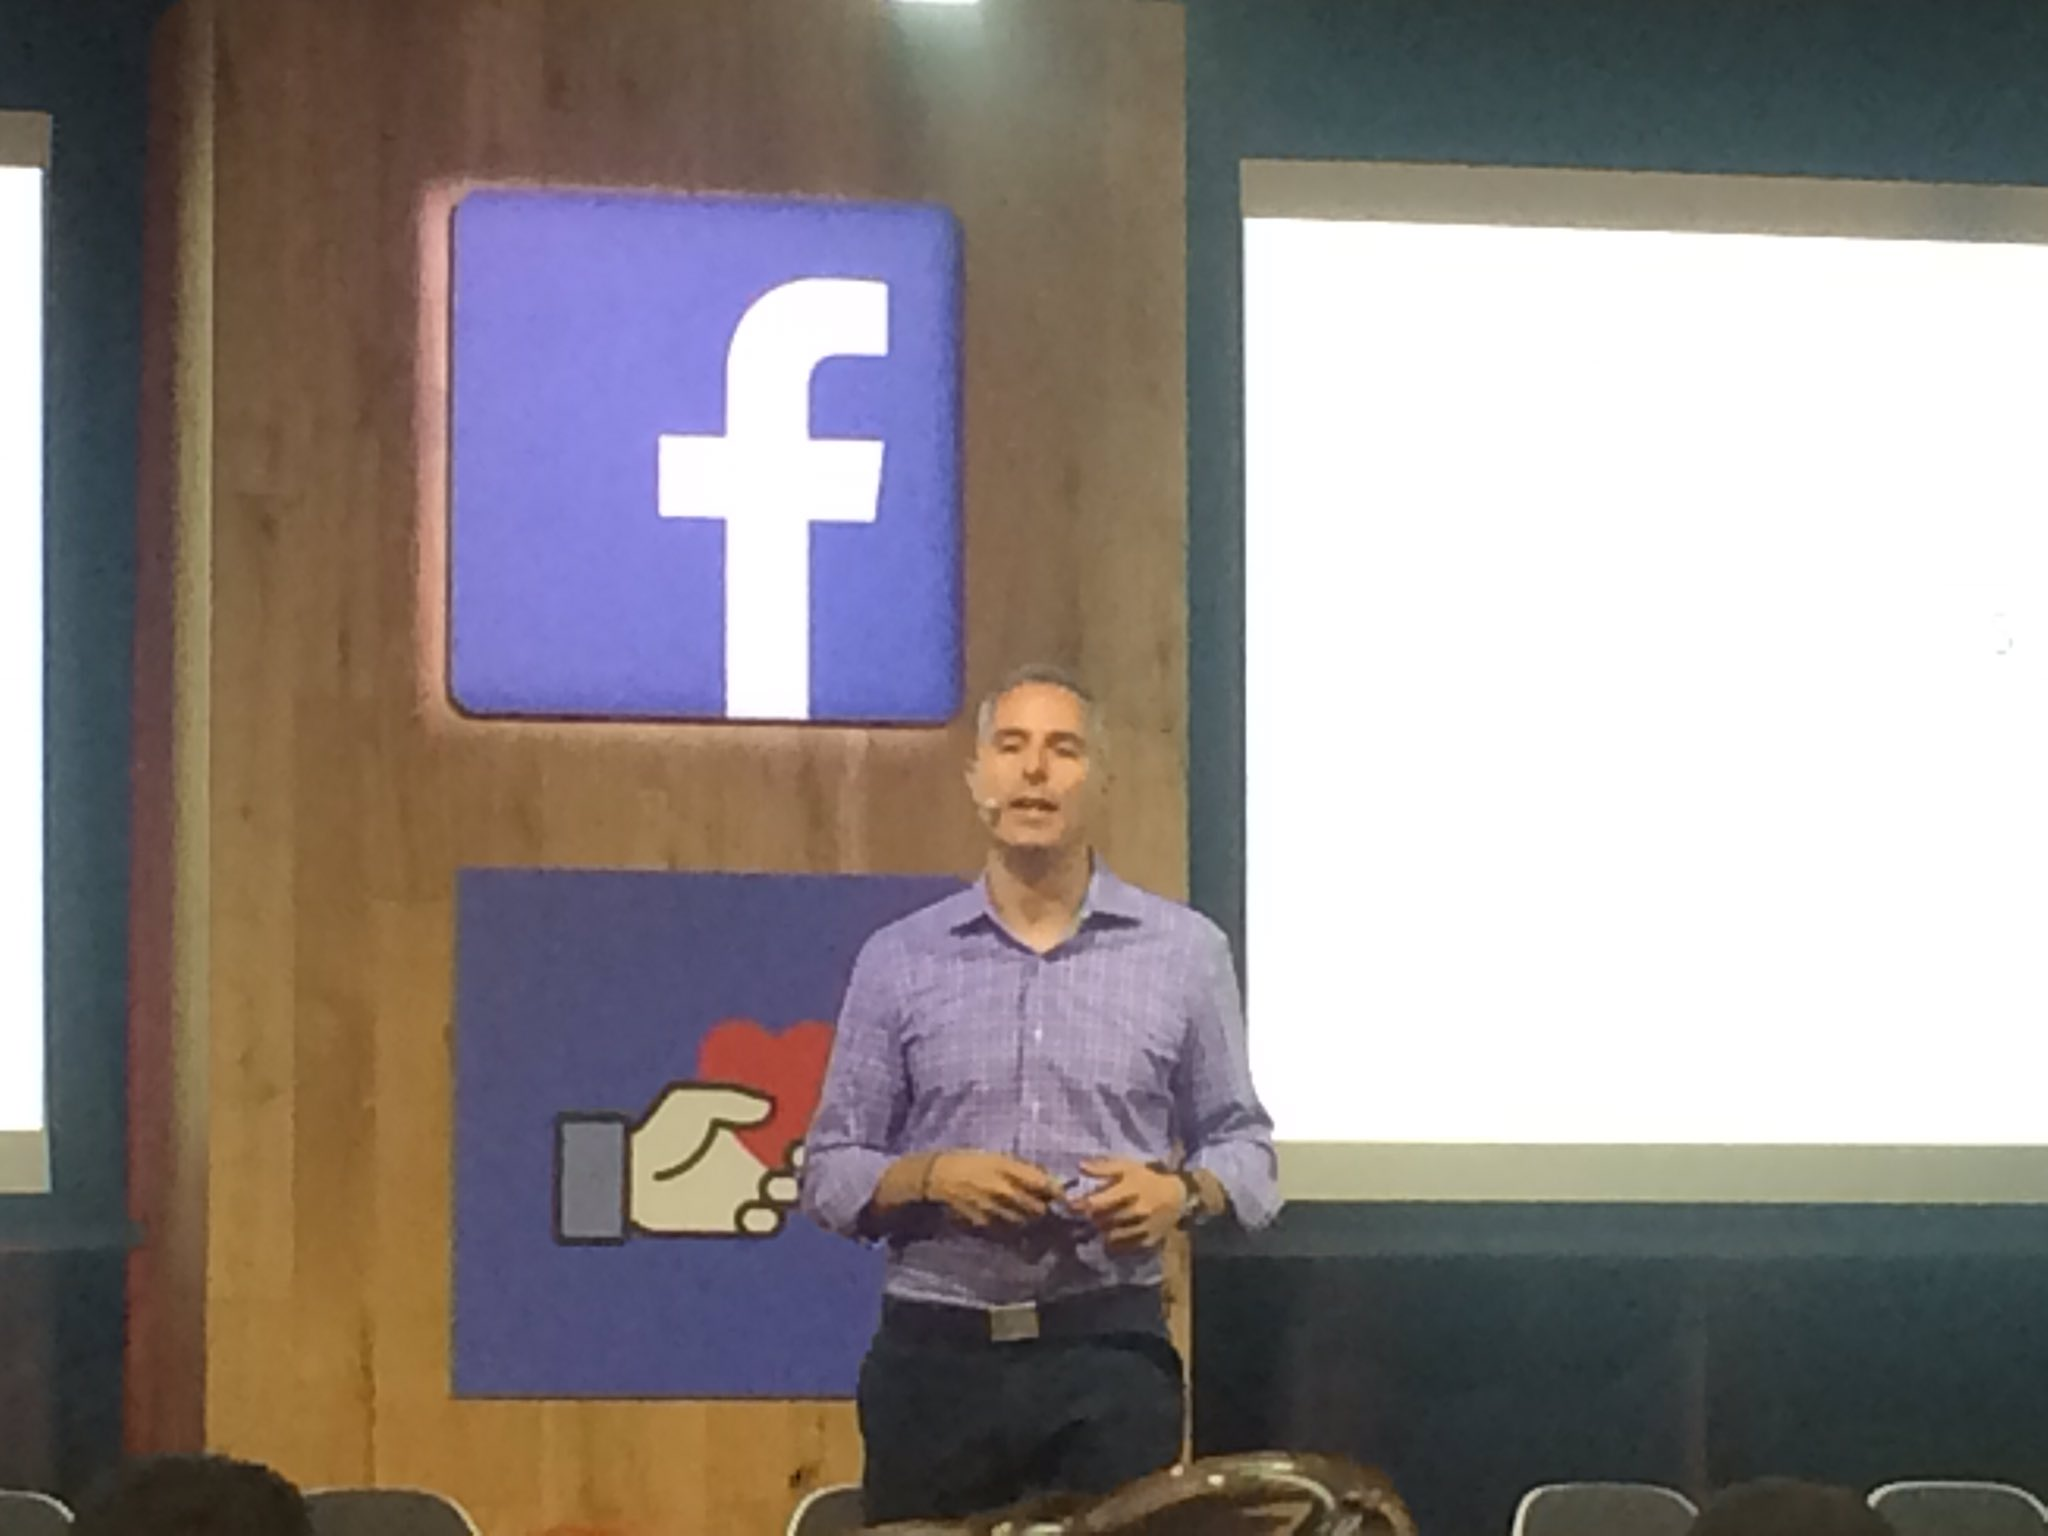 .@jcantarella intros @facebook social good products incl. #AmberAlerts 4 missing/exploited children & #CommunityHelp in crisis #FBsocialgood https://t.co/9bgrNl1Vav